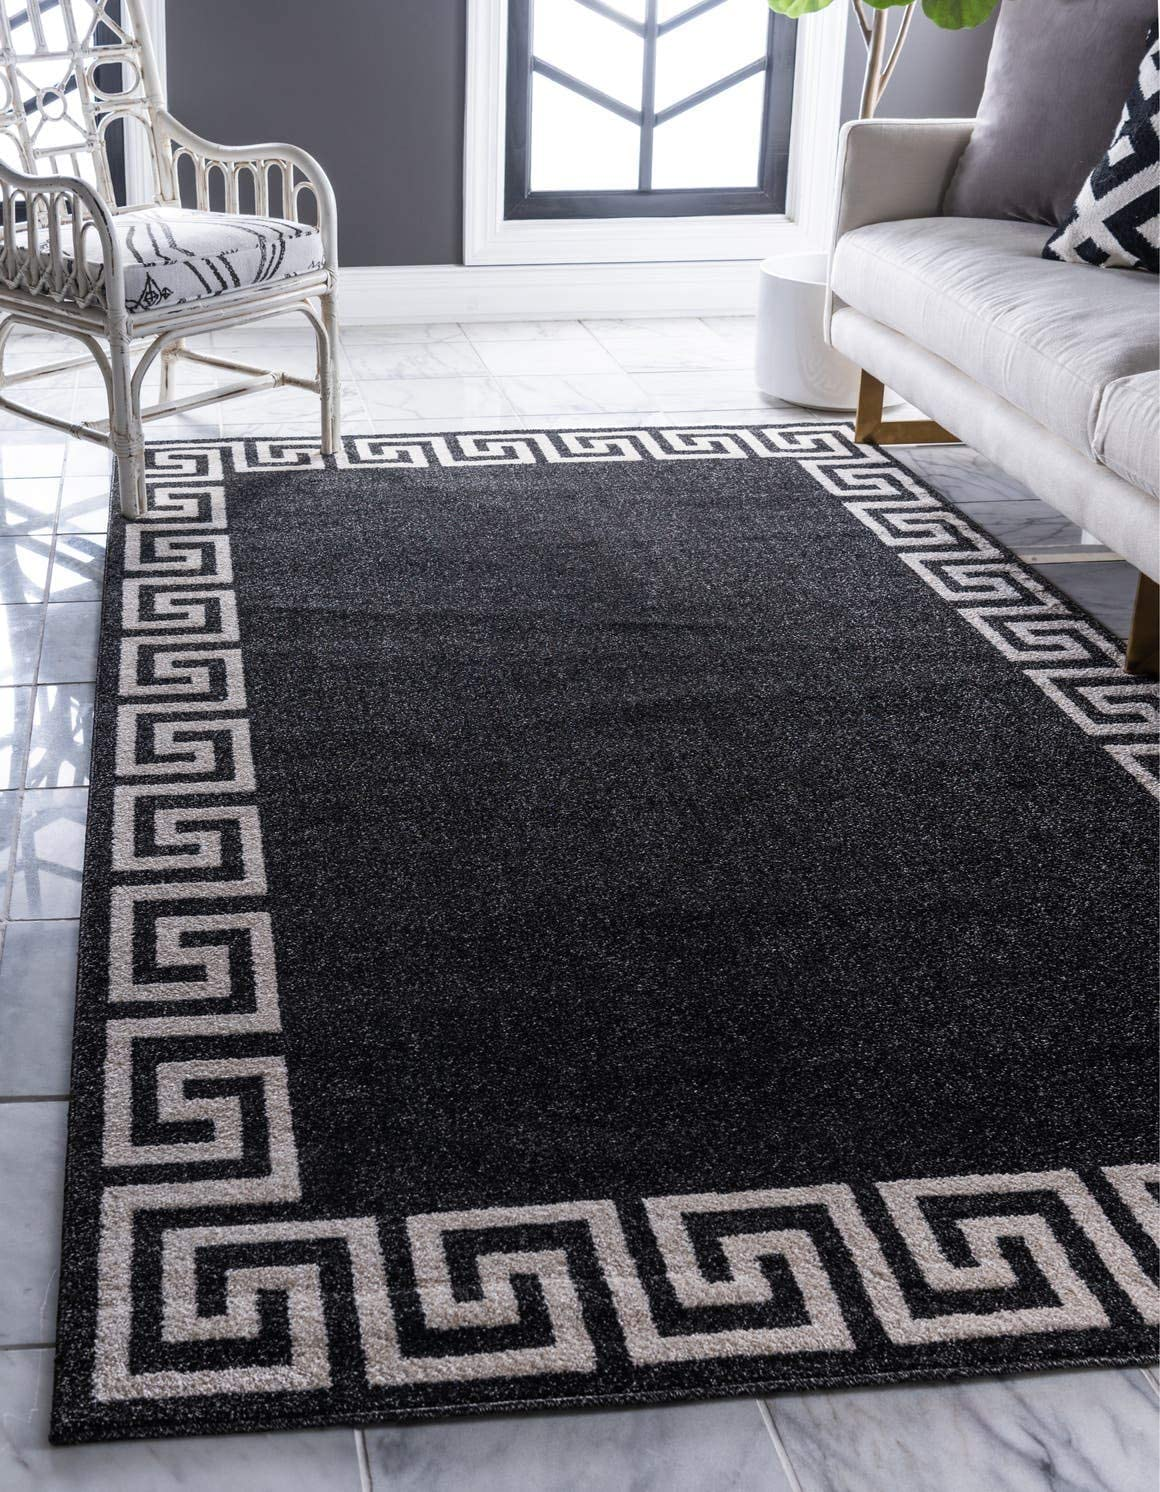 Unique Loom Athens Collection Geometric Casual Modern Border Charcoal Area Rug 5 0 x 8 0